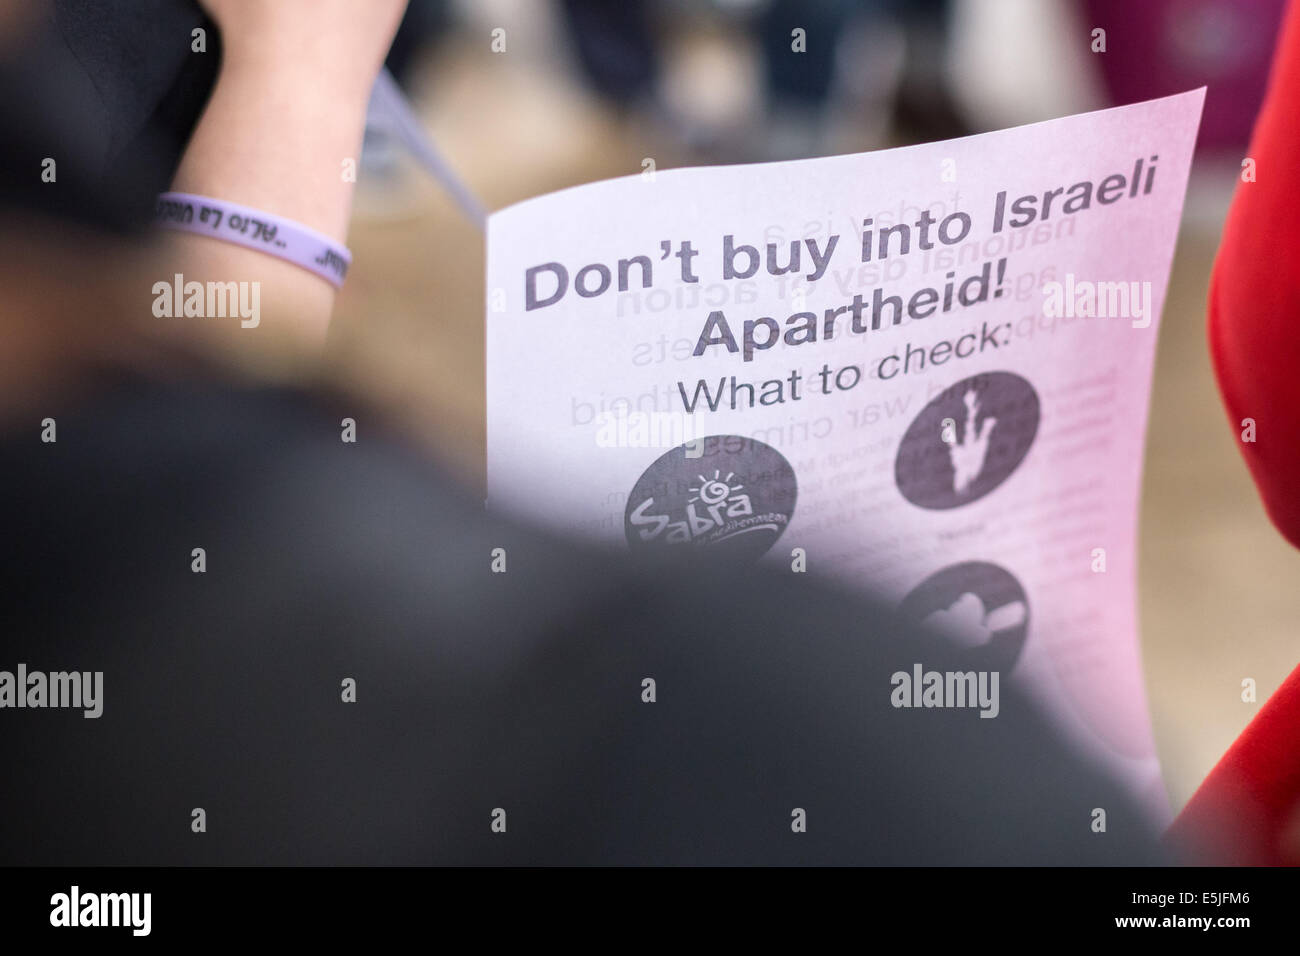 London, UK. 2nd Aug, 2014. Protest against Israeli food products sold in Sainsbury's supermarket Credit:  Guy Corbishley/Alamy - Stock Image